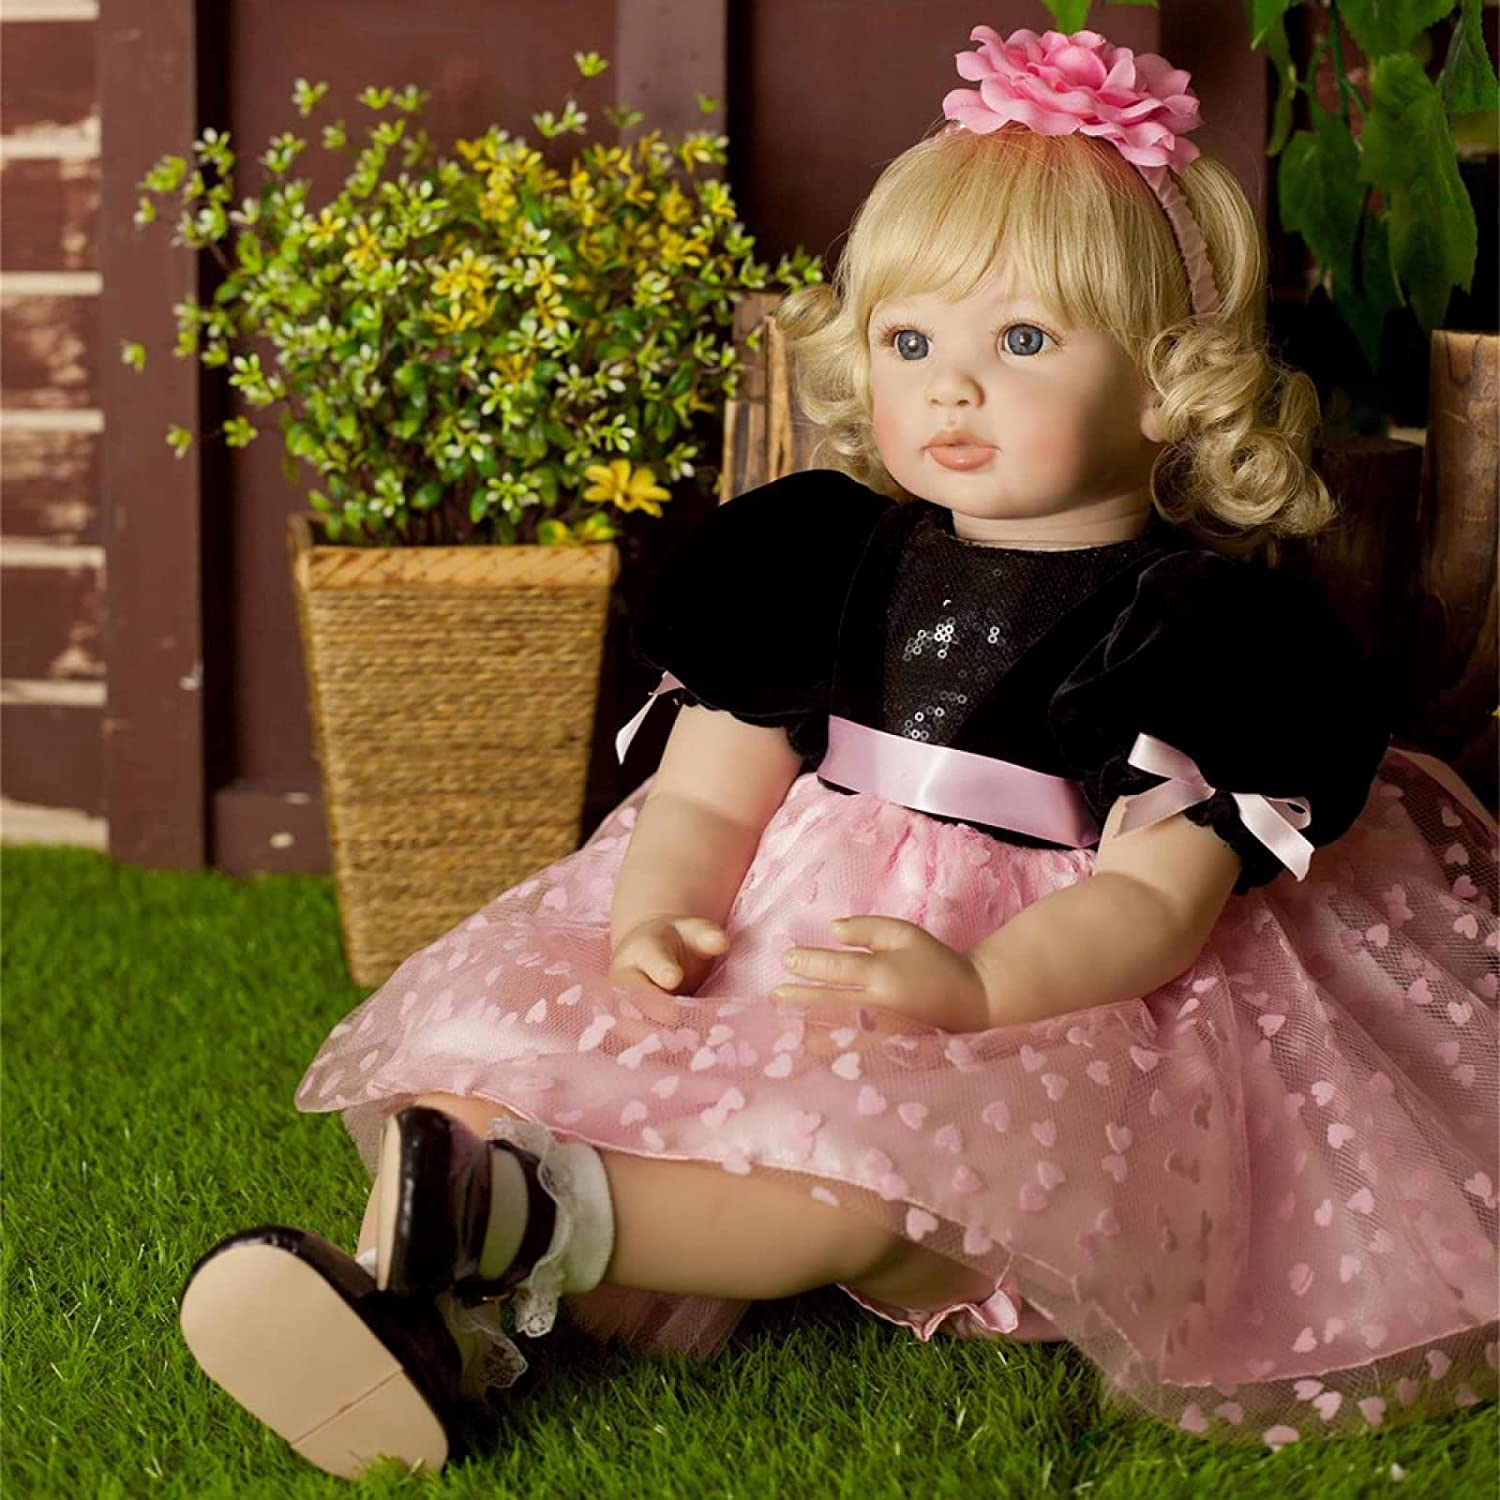 YANRU Baby Inventory cleanup selling sale Clearance SALE Limited time Newborn Doll 24 in Can't Dolls Ha Reborn Speak